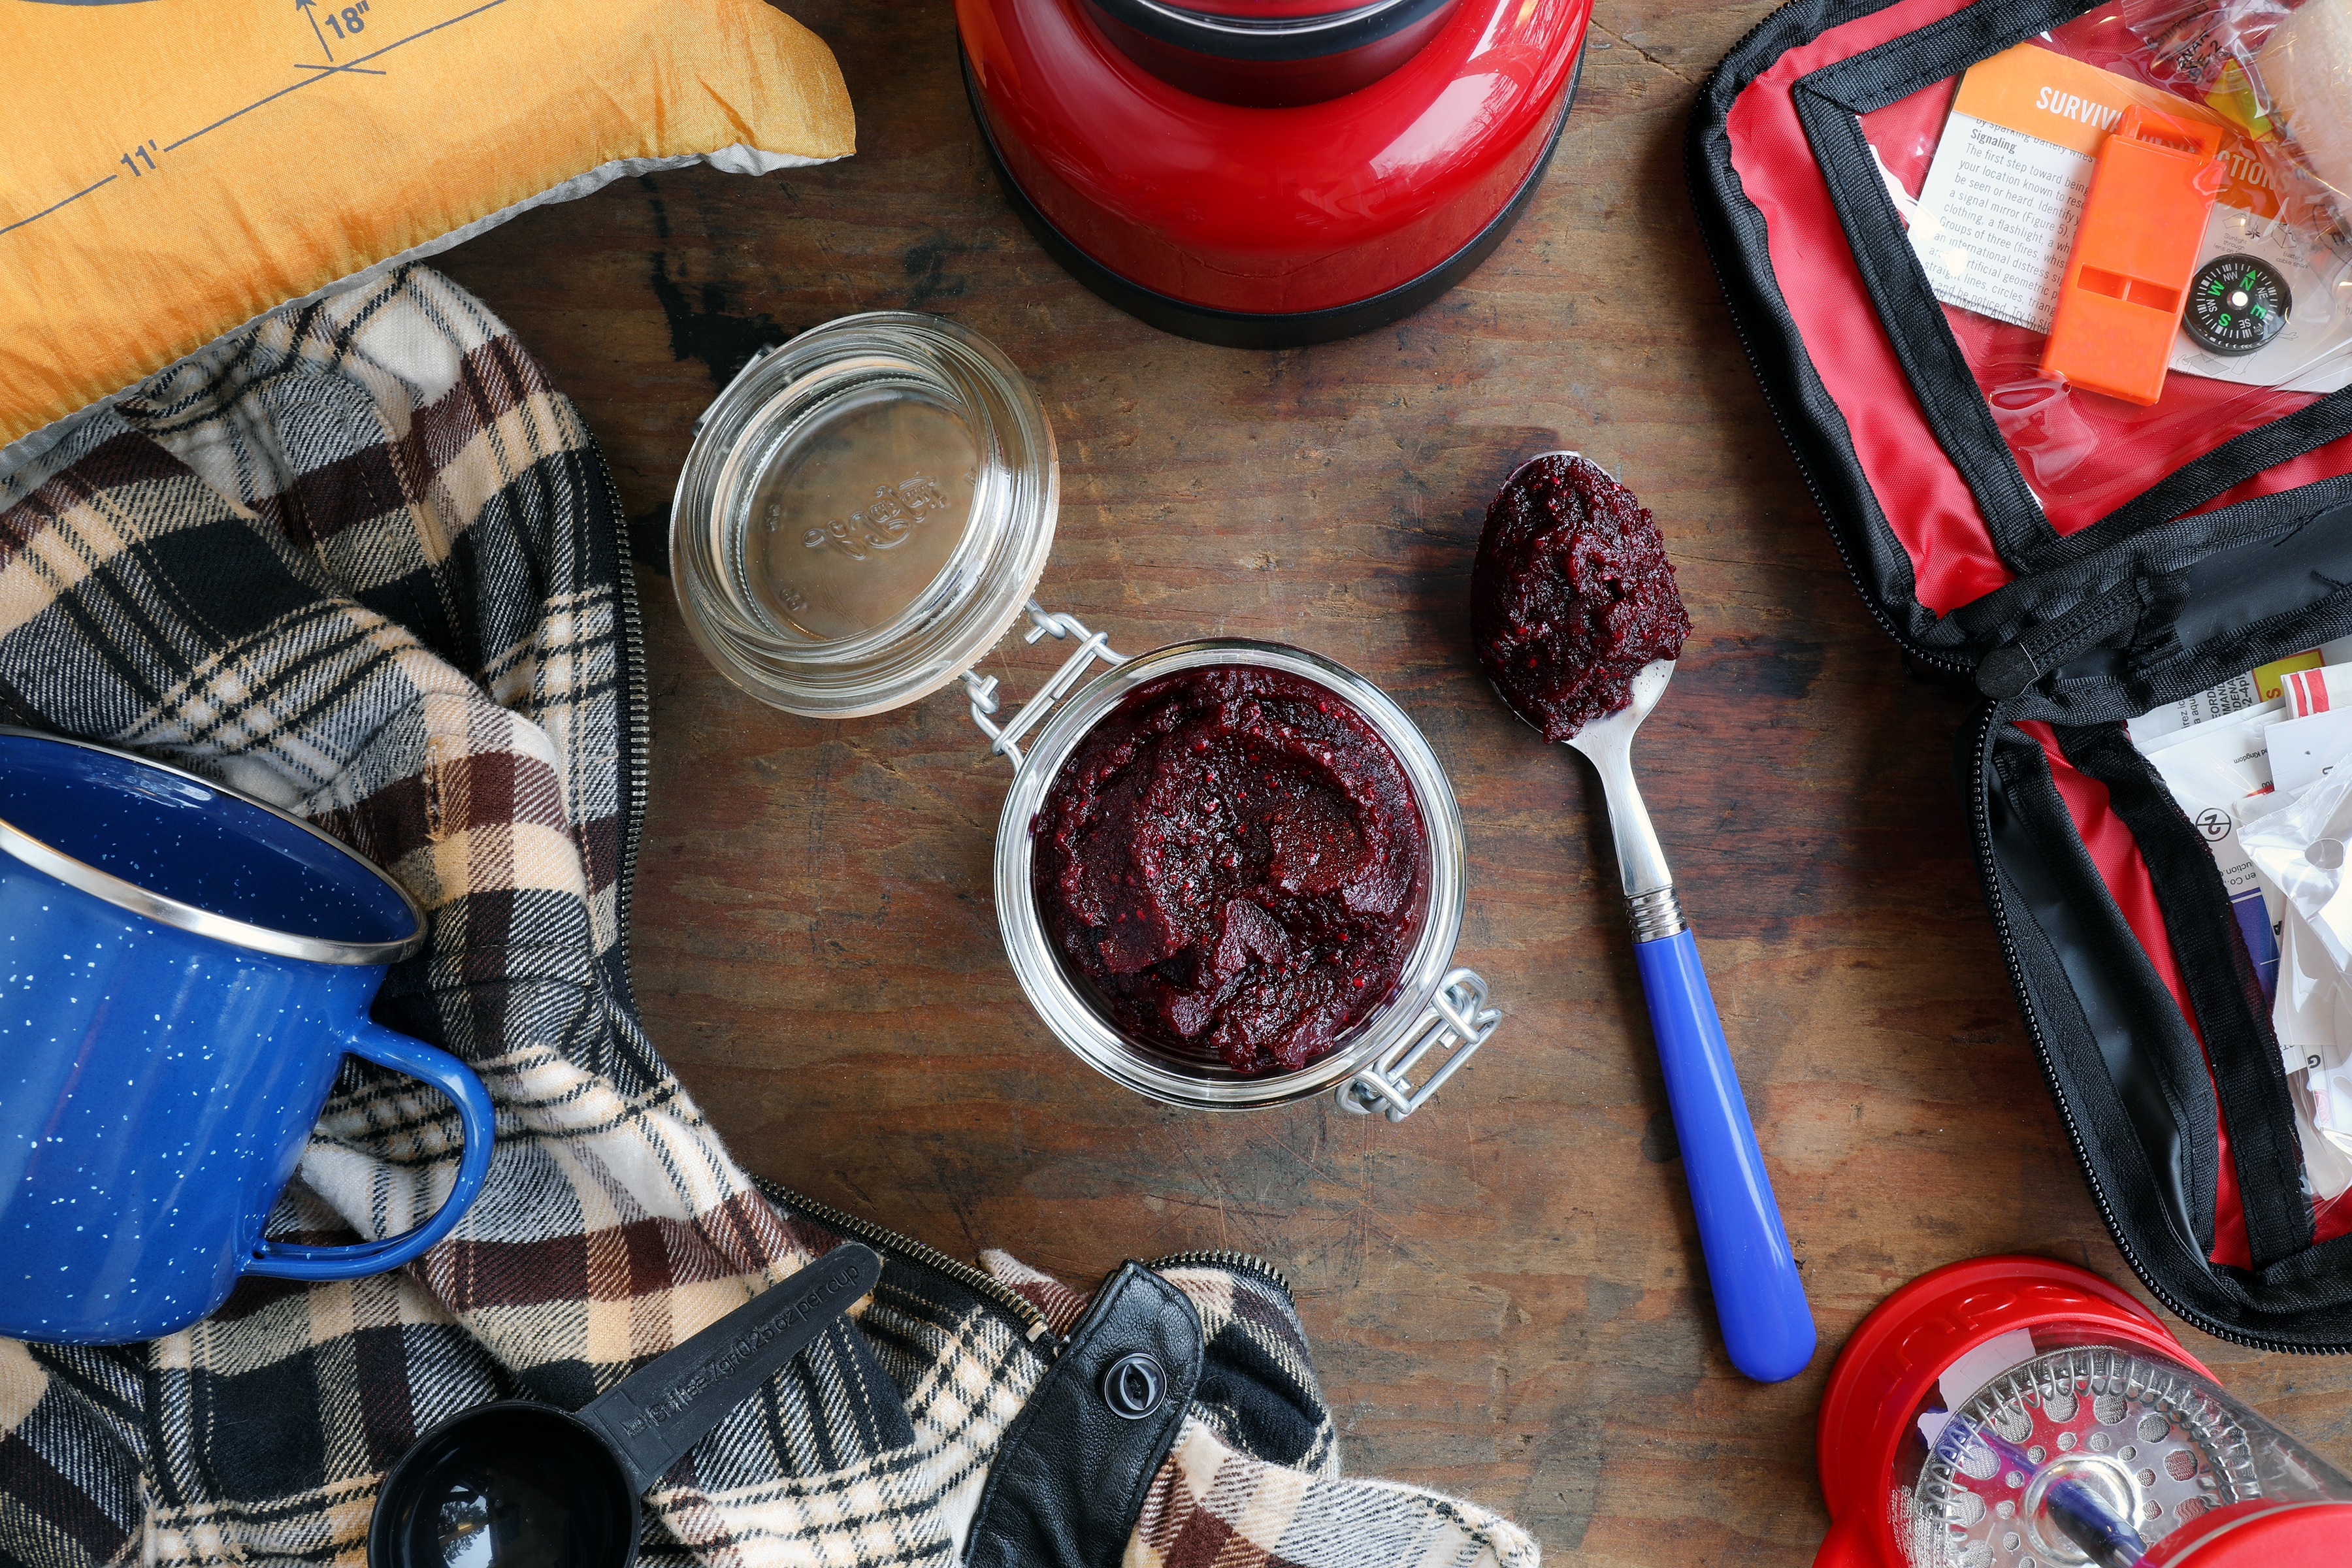 Clamp jar with deep red paste surrounded by camping gear and accessories.